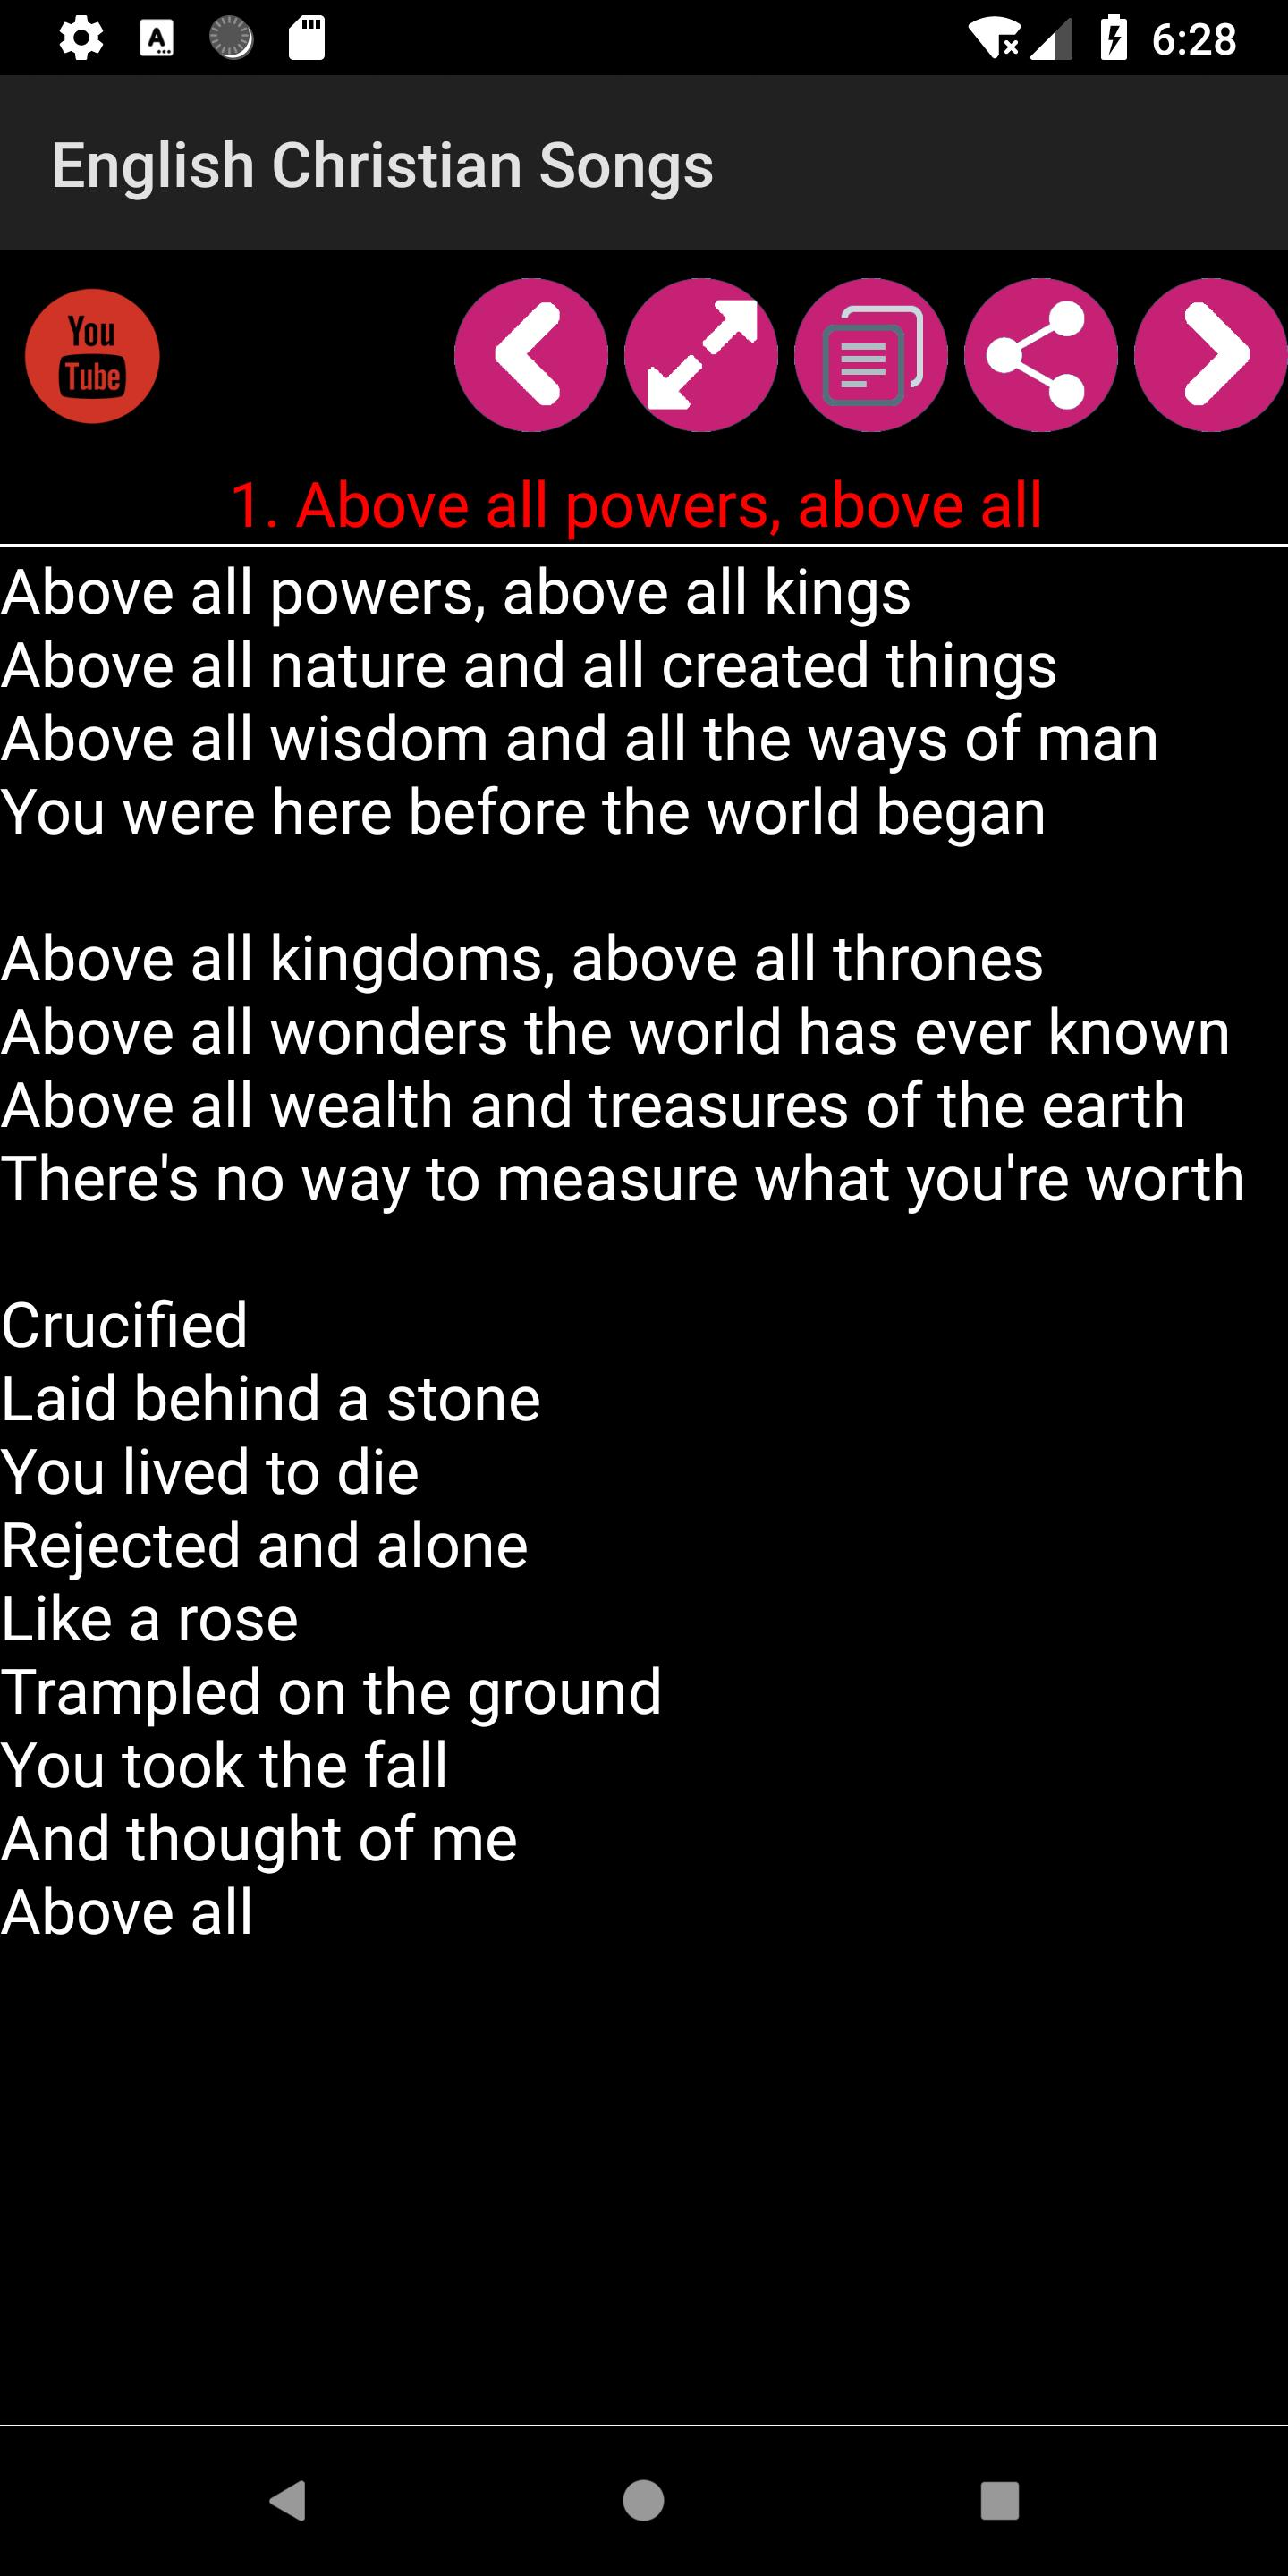 English Christian Song Book for Android - APK Download